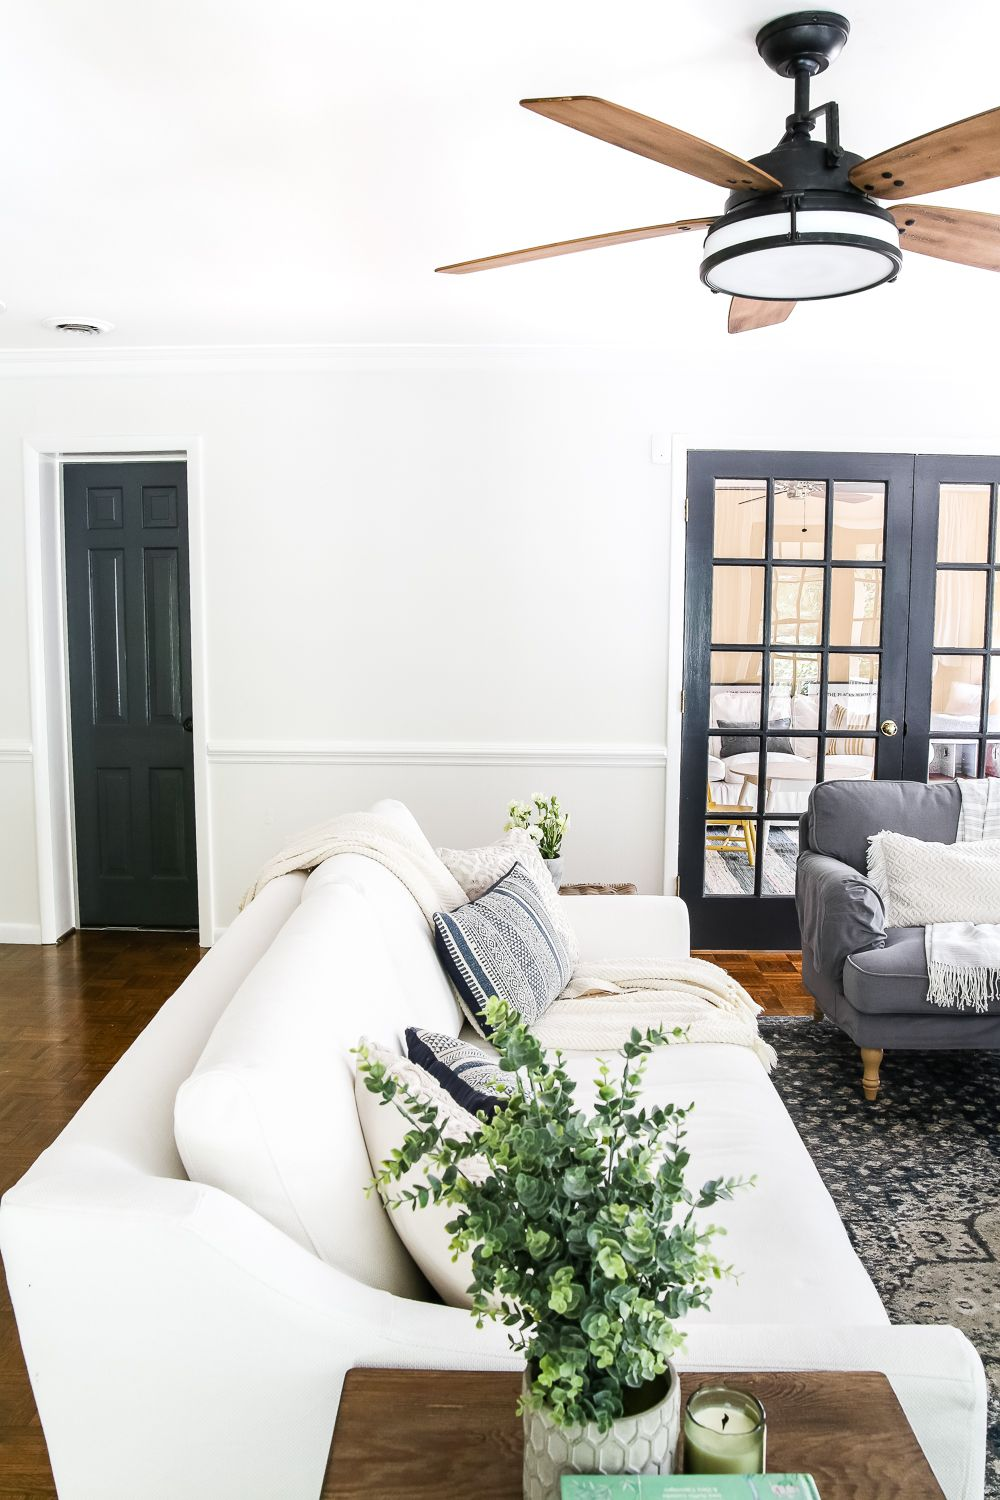 How to hang heavy wall decor without studs drywall wall decor and